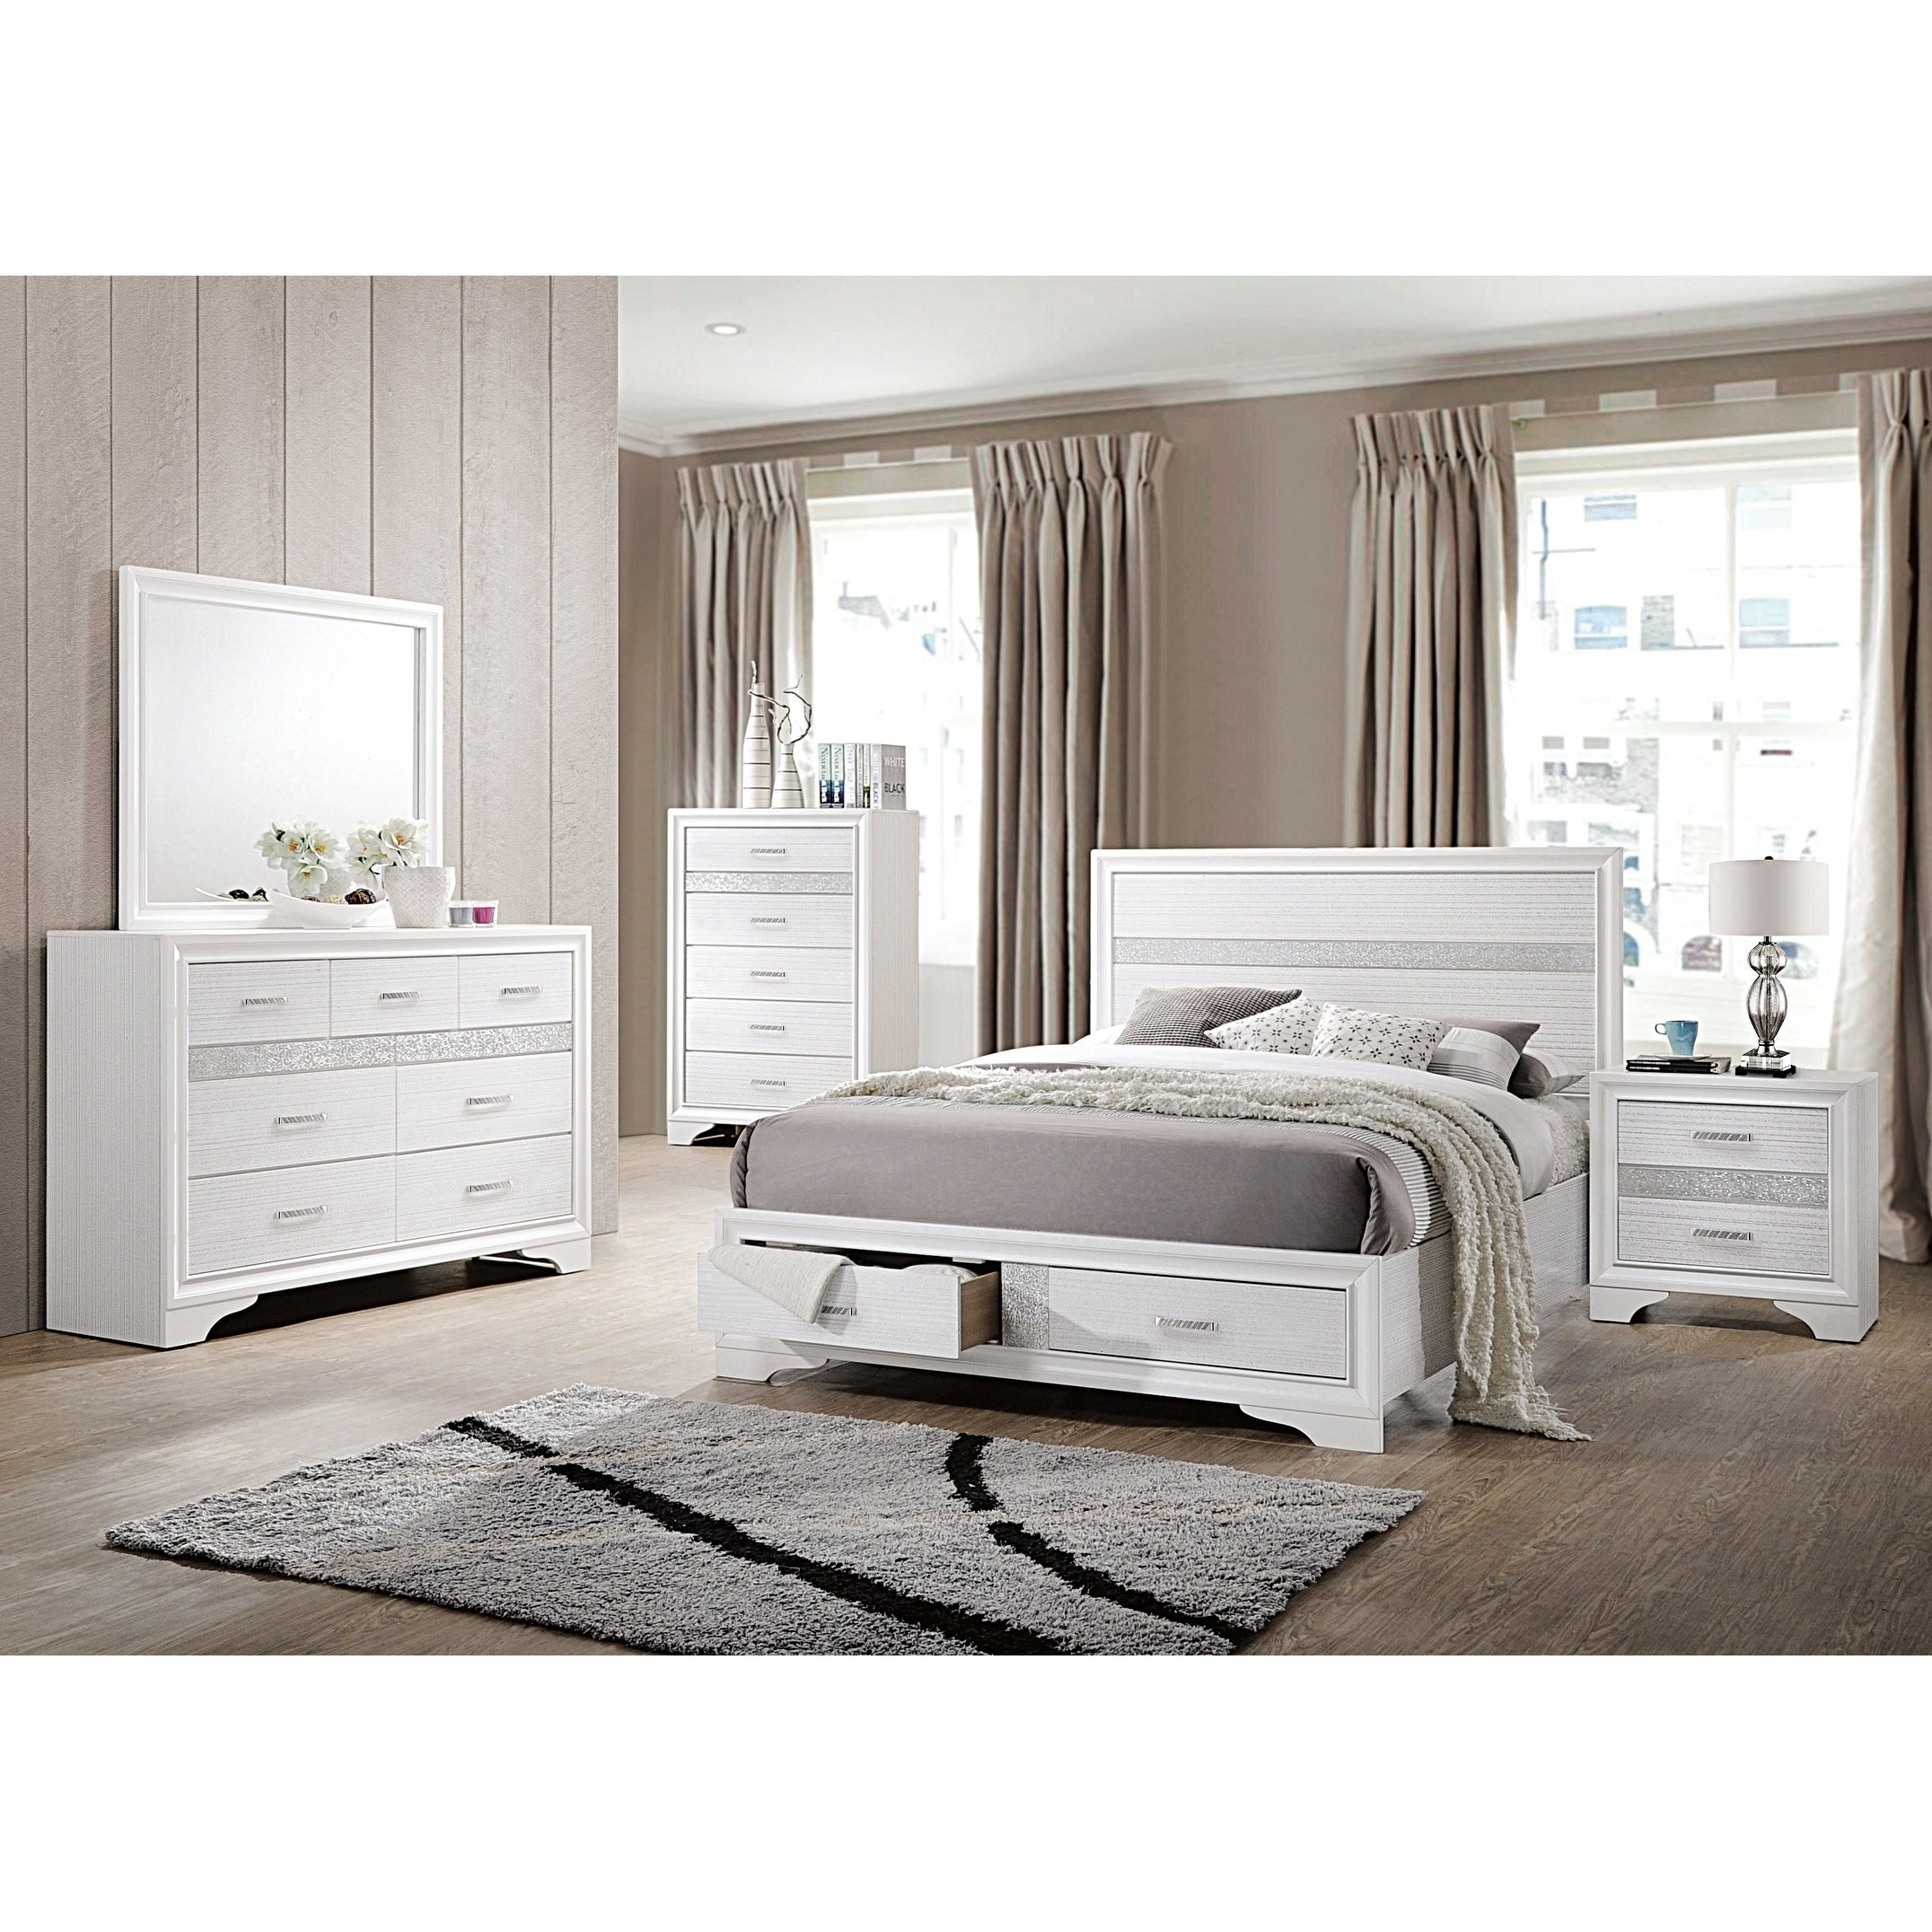 Buy White, Wood Bedroom Sets Online at Overstock | Our Best ...